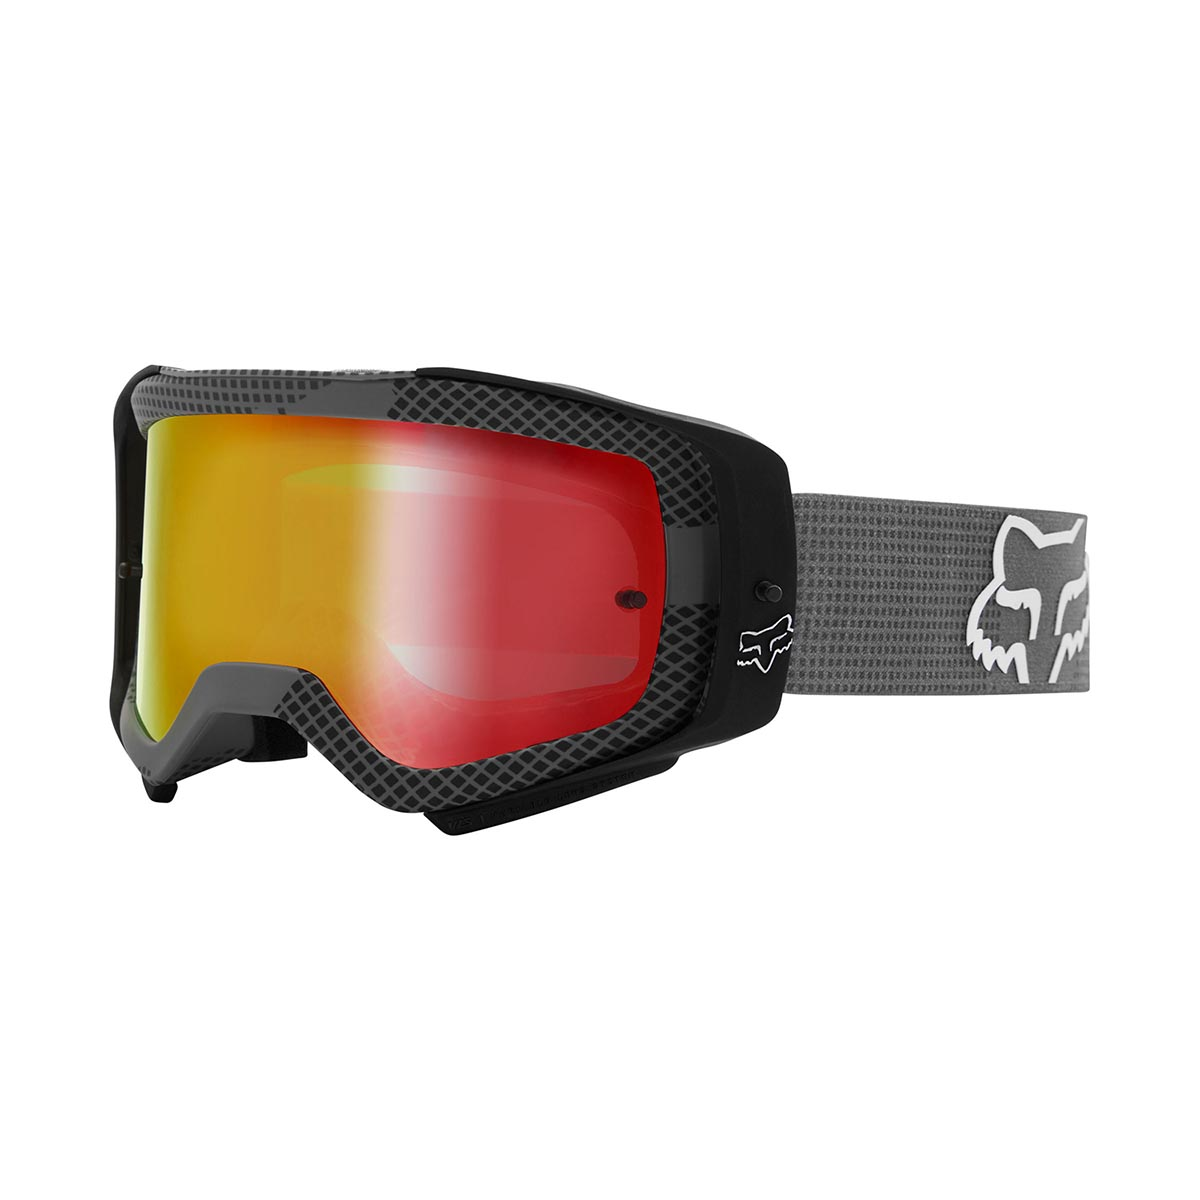 FOX - AIRSPACE SPEYER MIRRORED GOGGLES